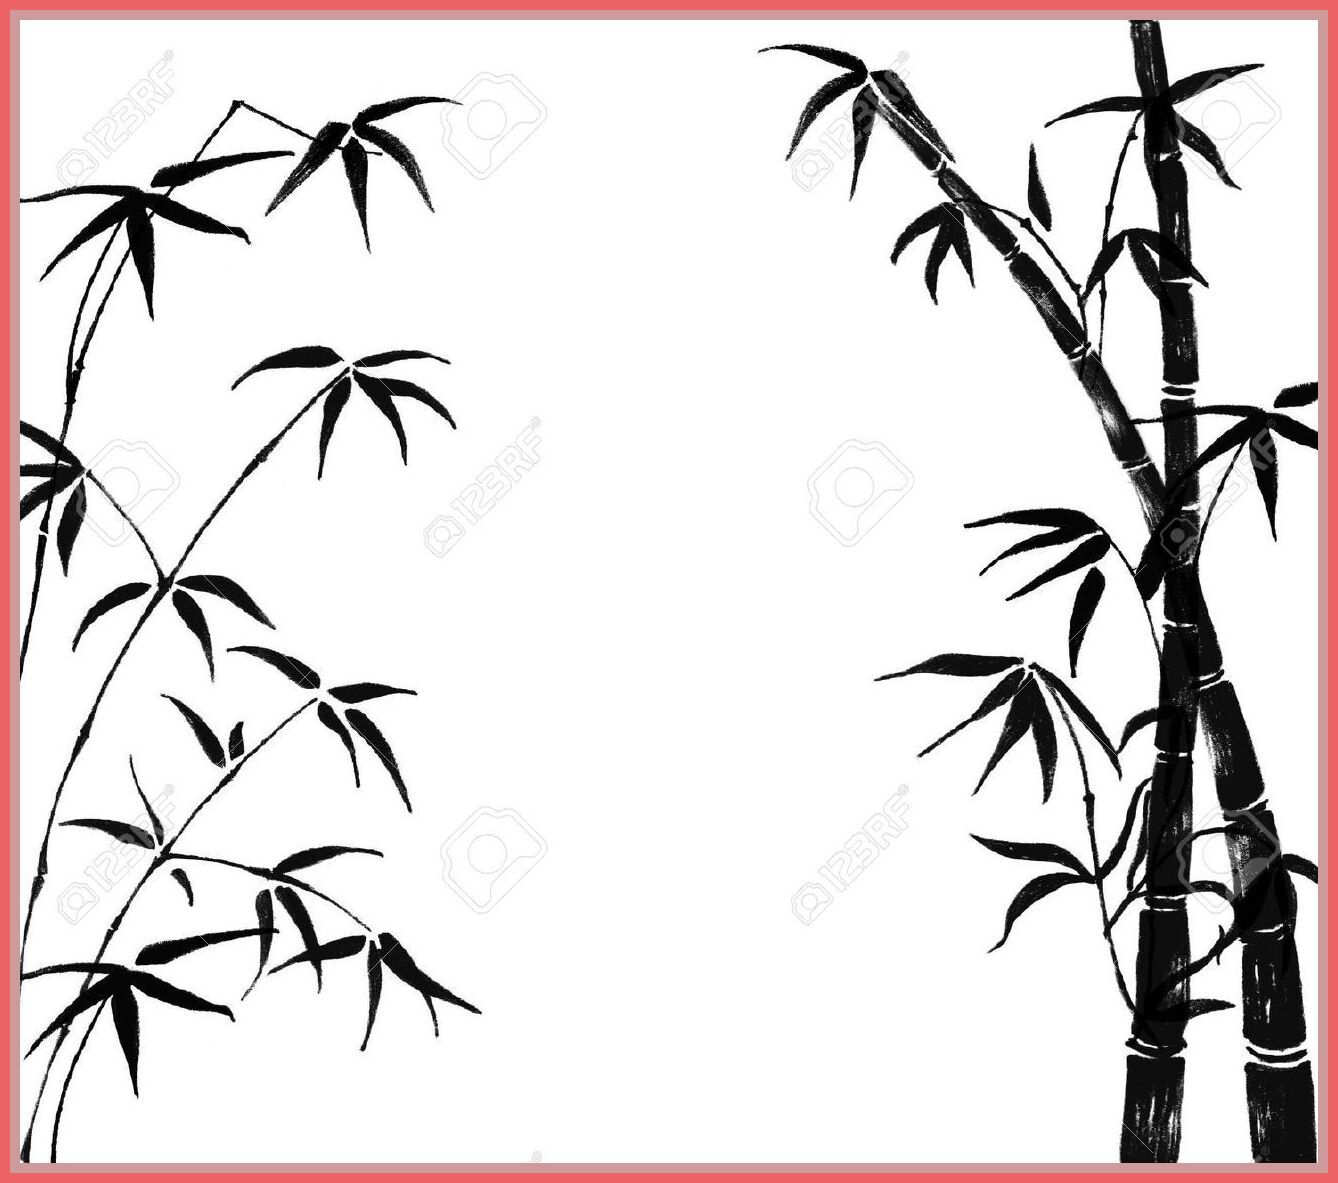 114 reference of Bamboo Leaves vector eps in 2020 Bamboo